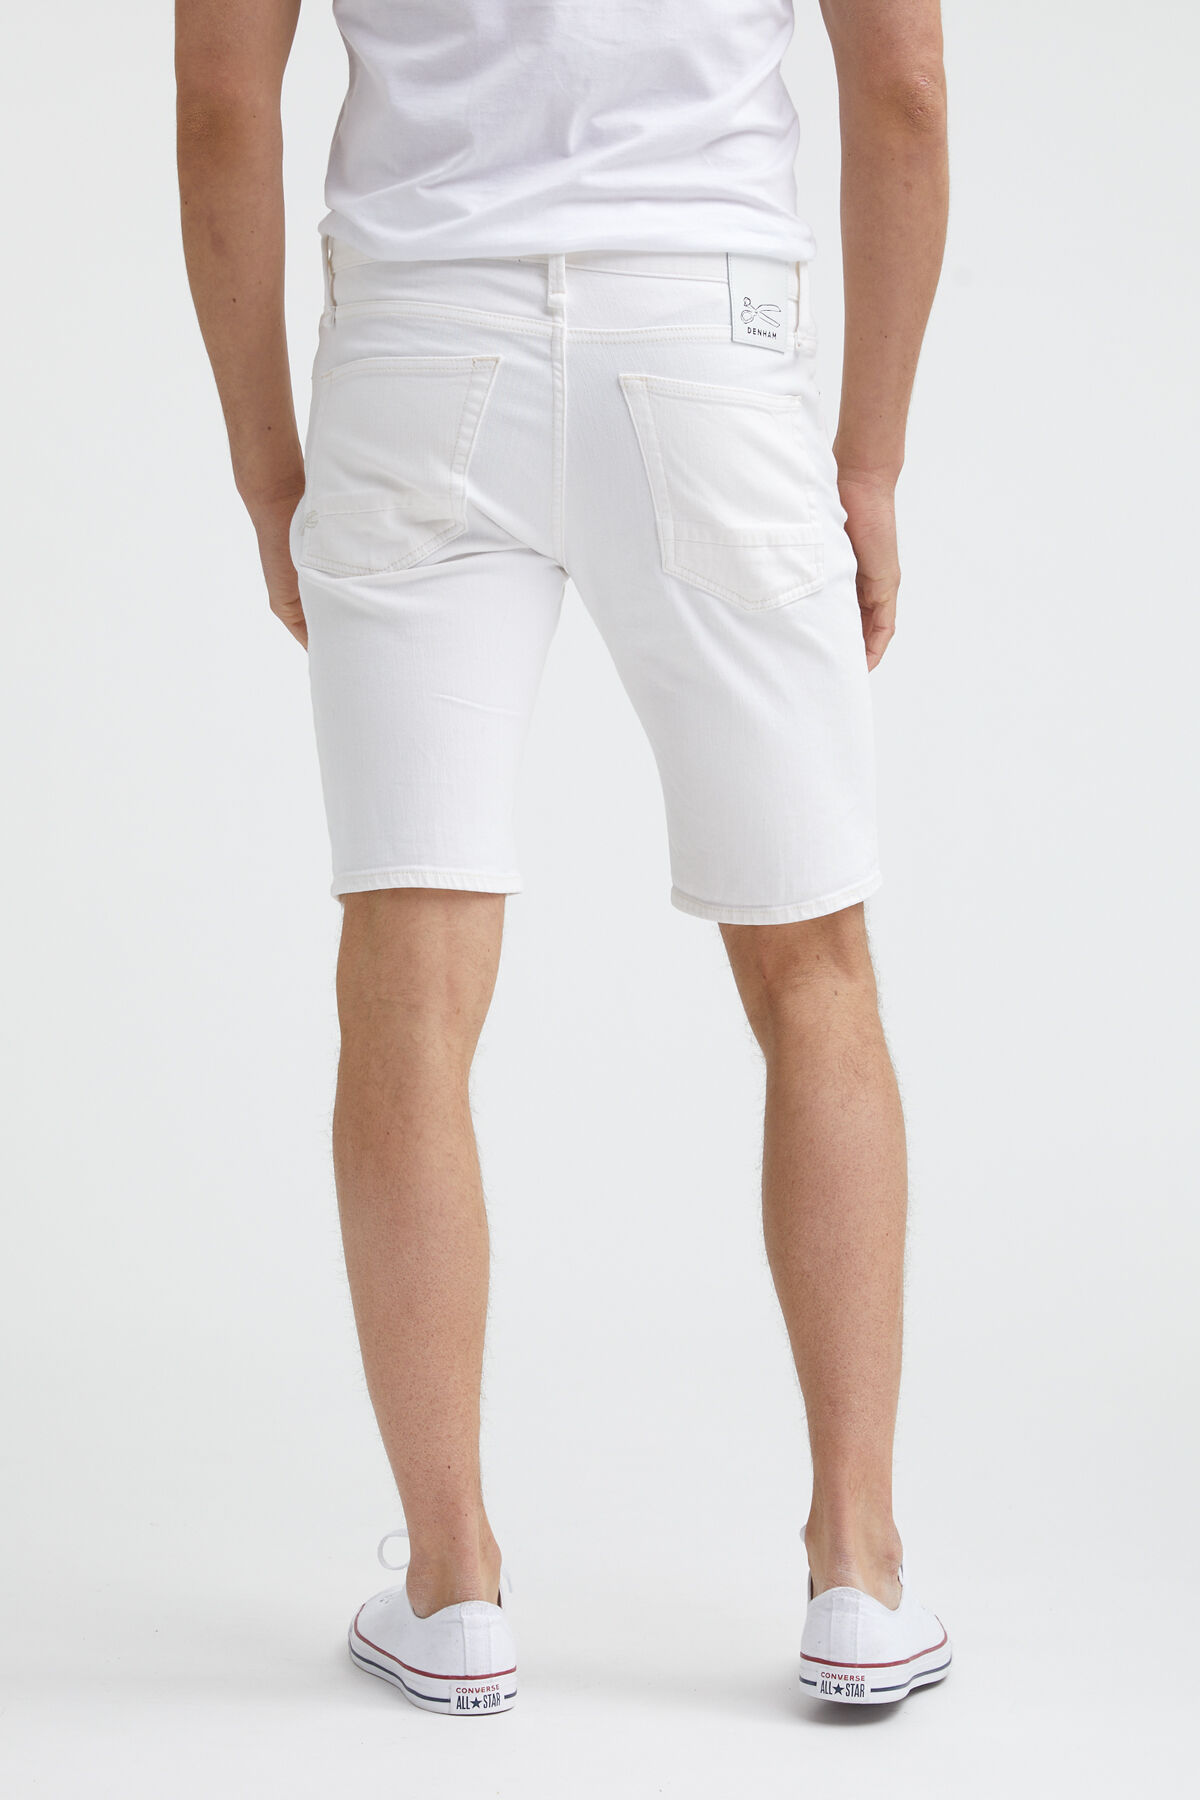 RAZOR SHORT Pure White Finish - Slim Fit